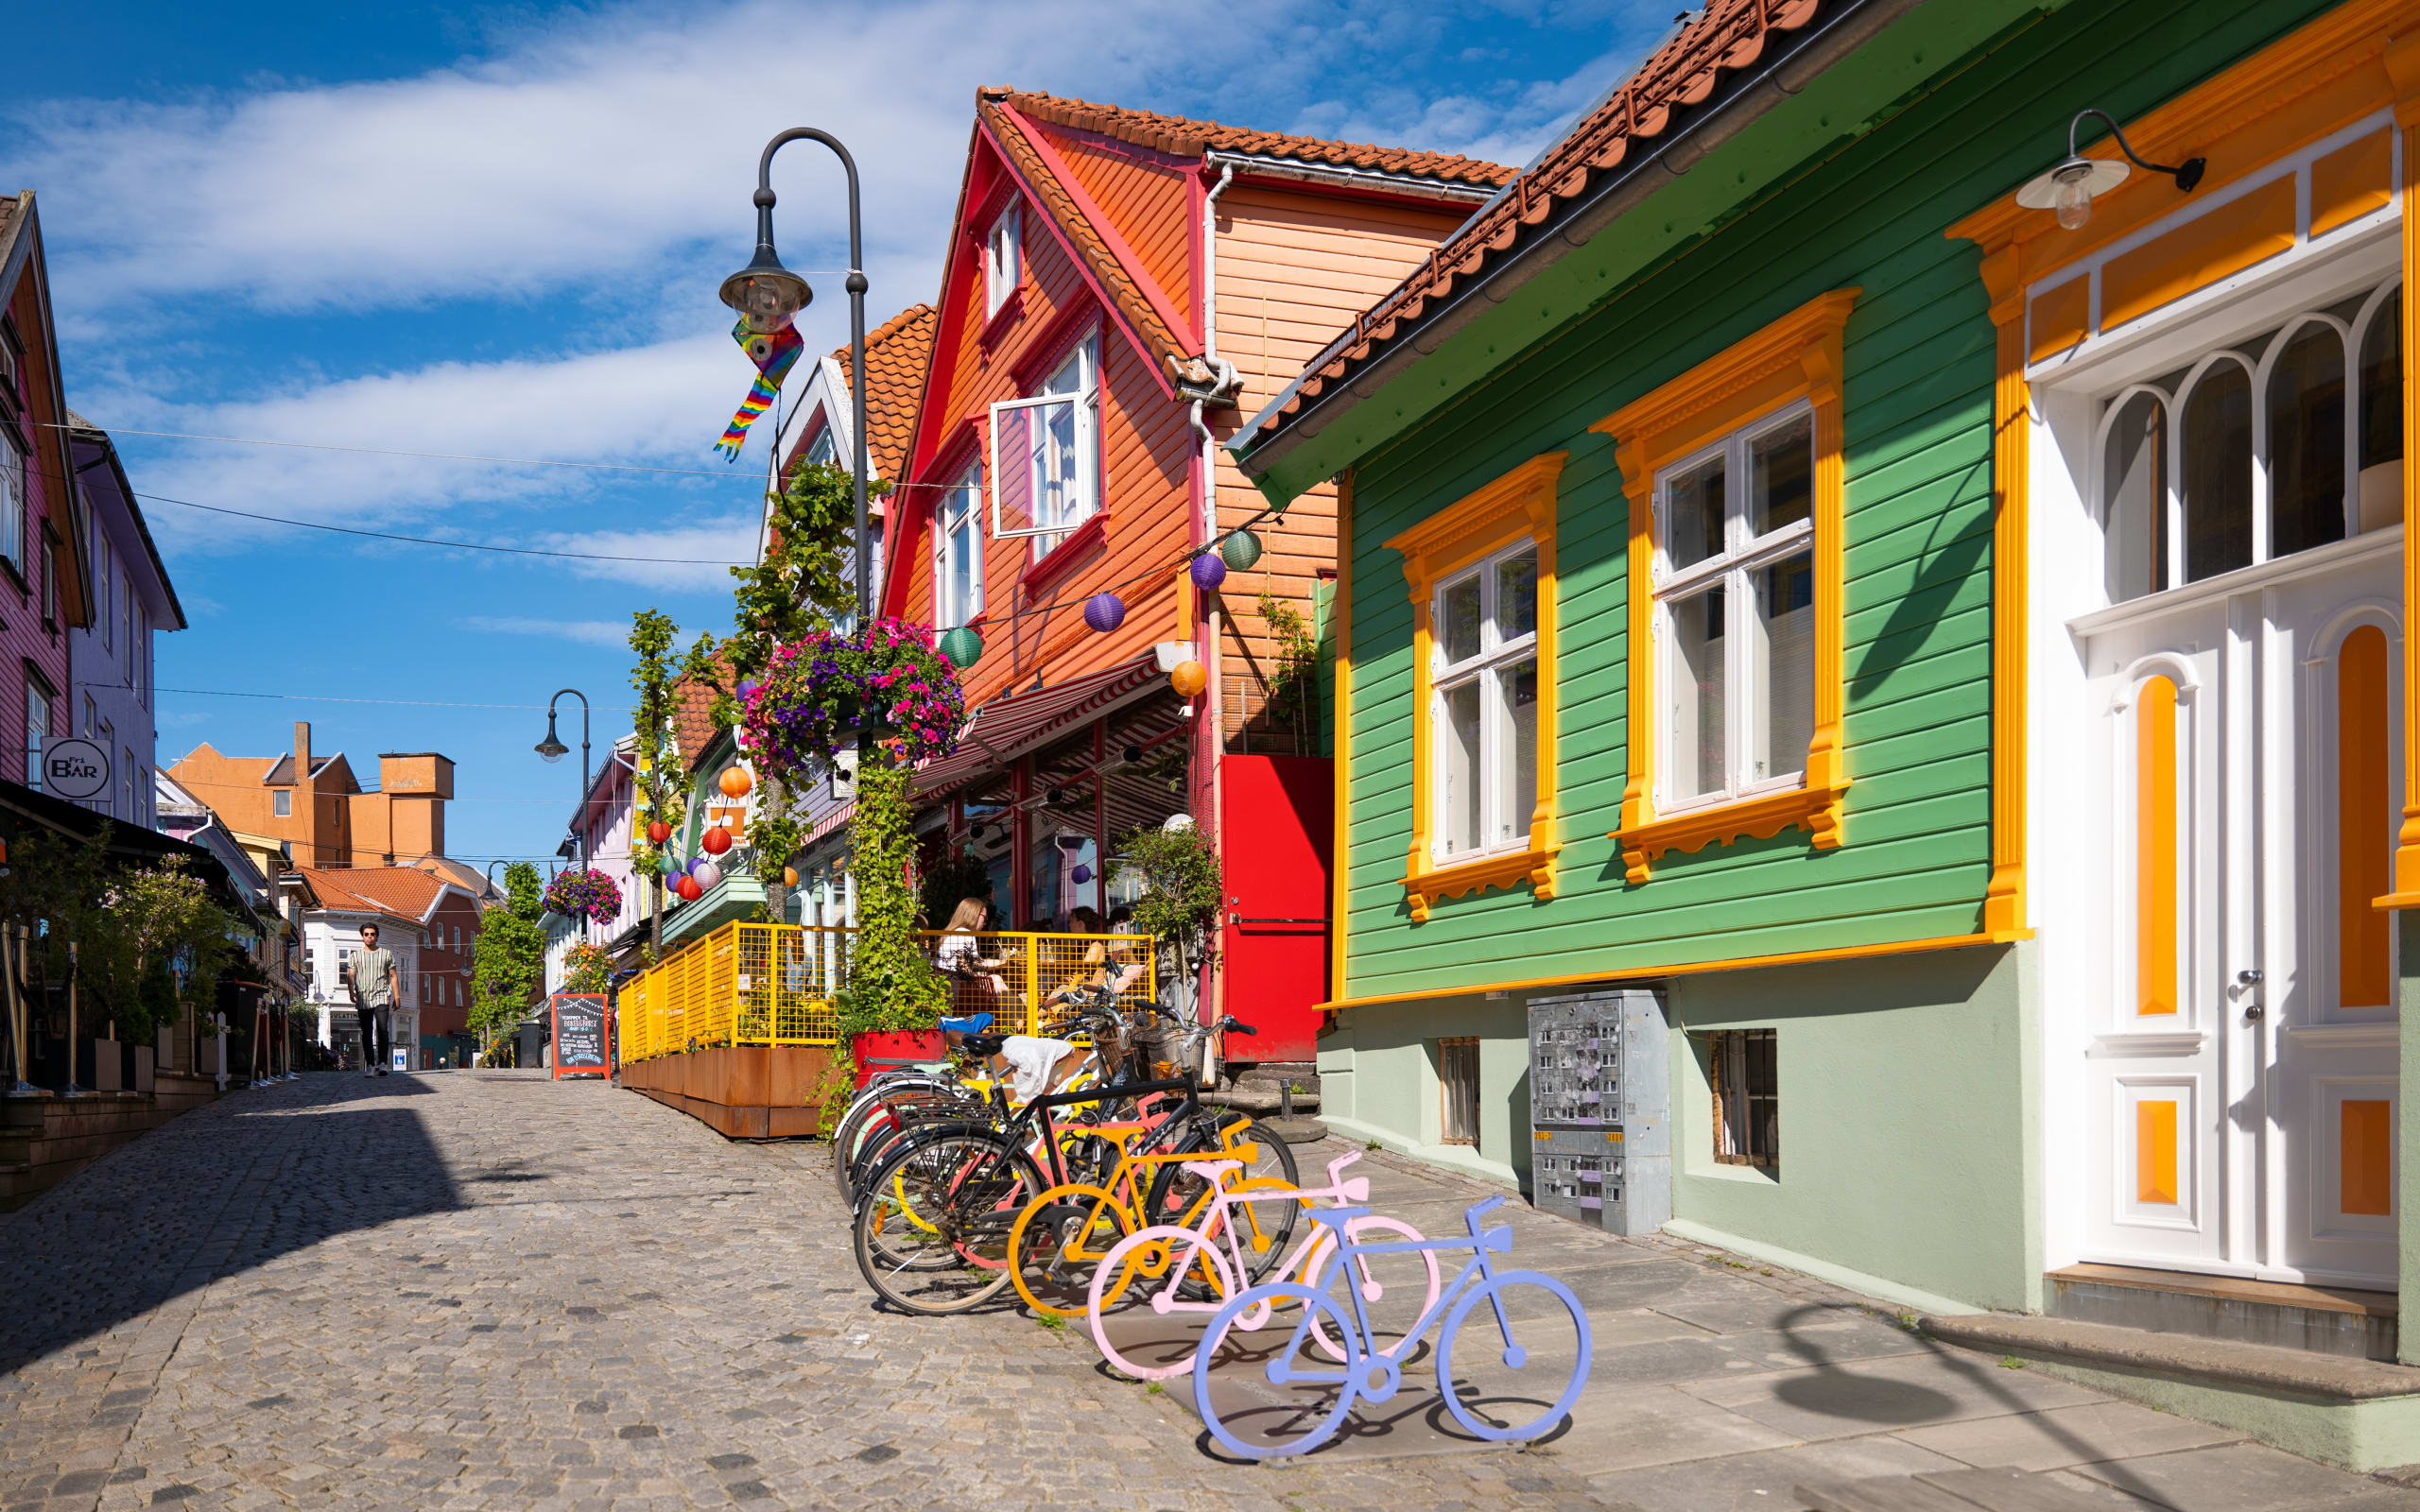 Colorful wooden houses create a warm atmosphere